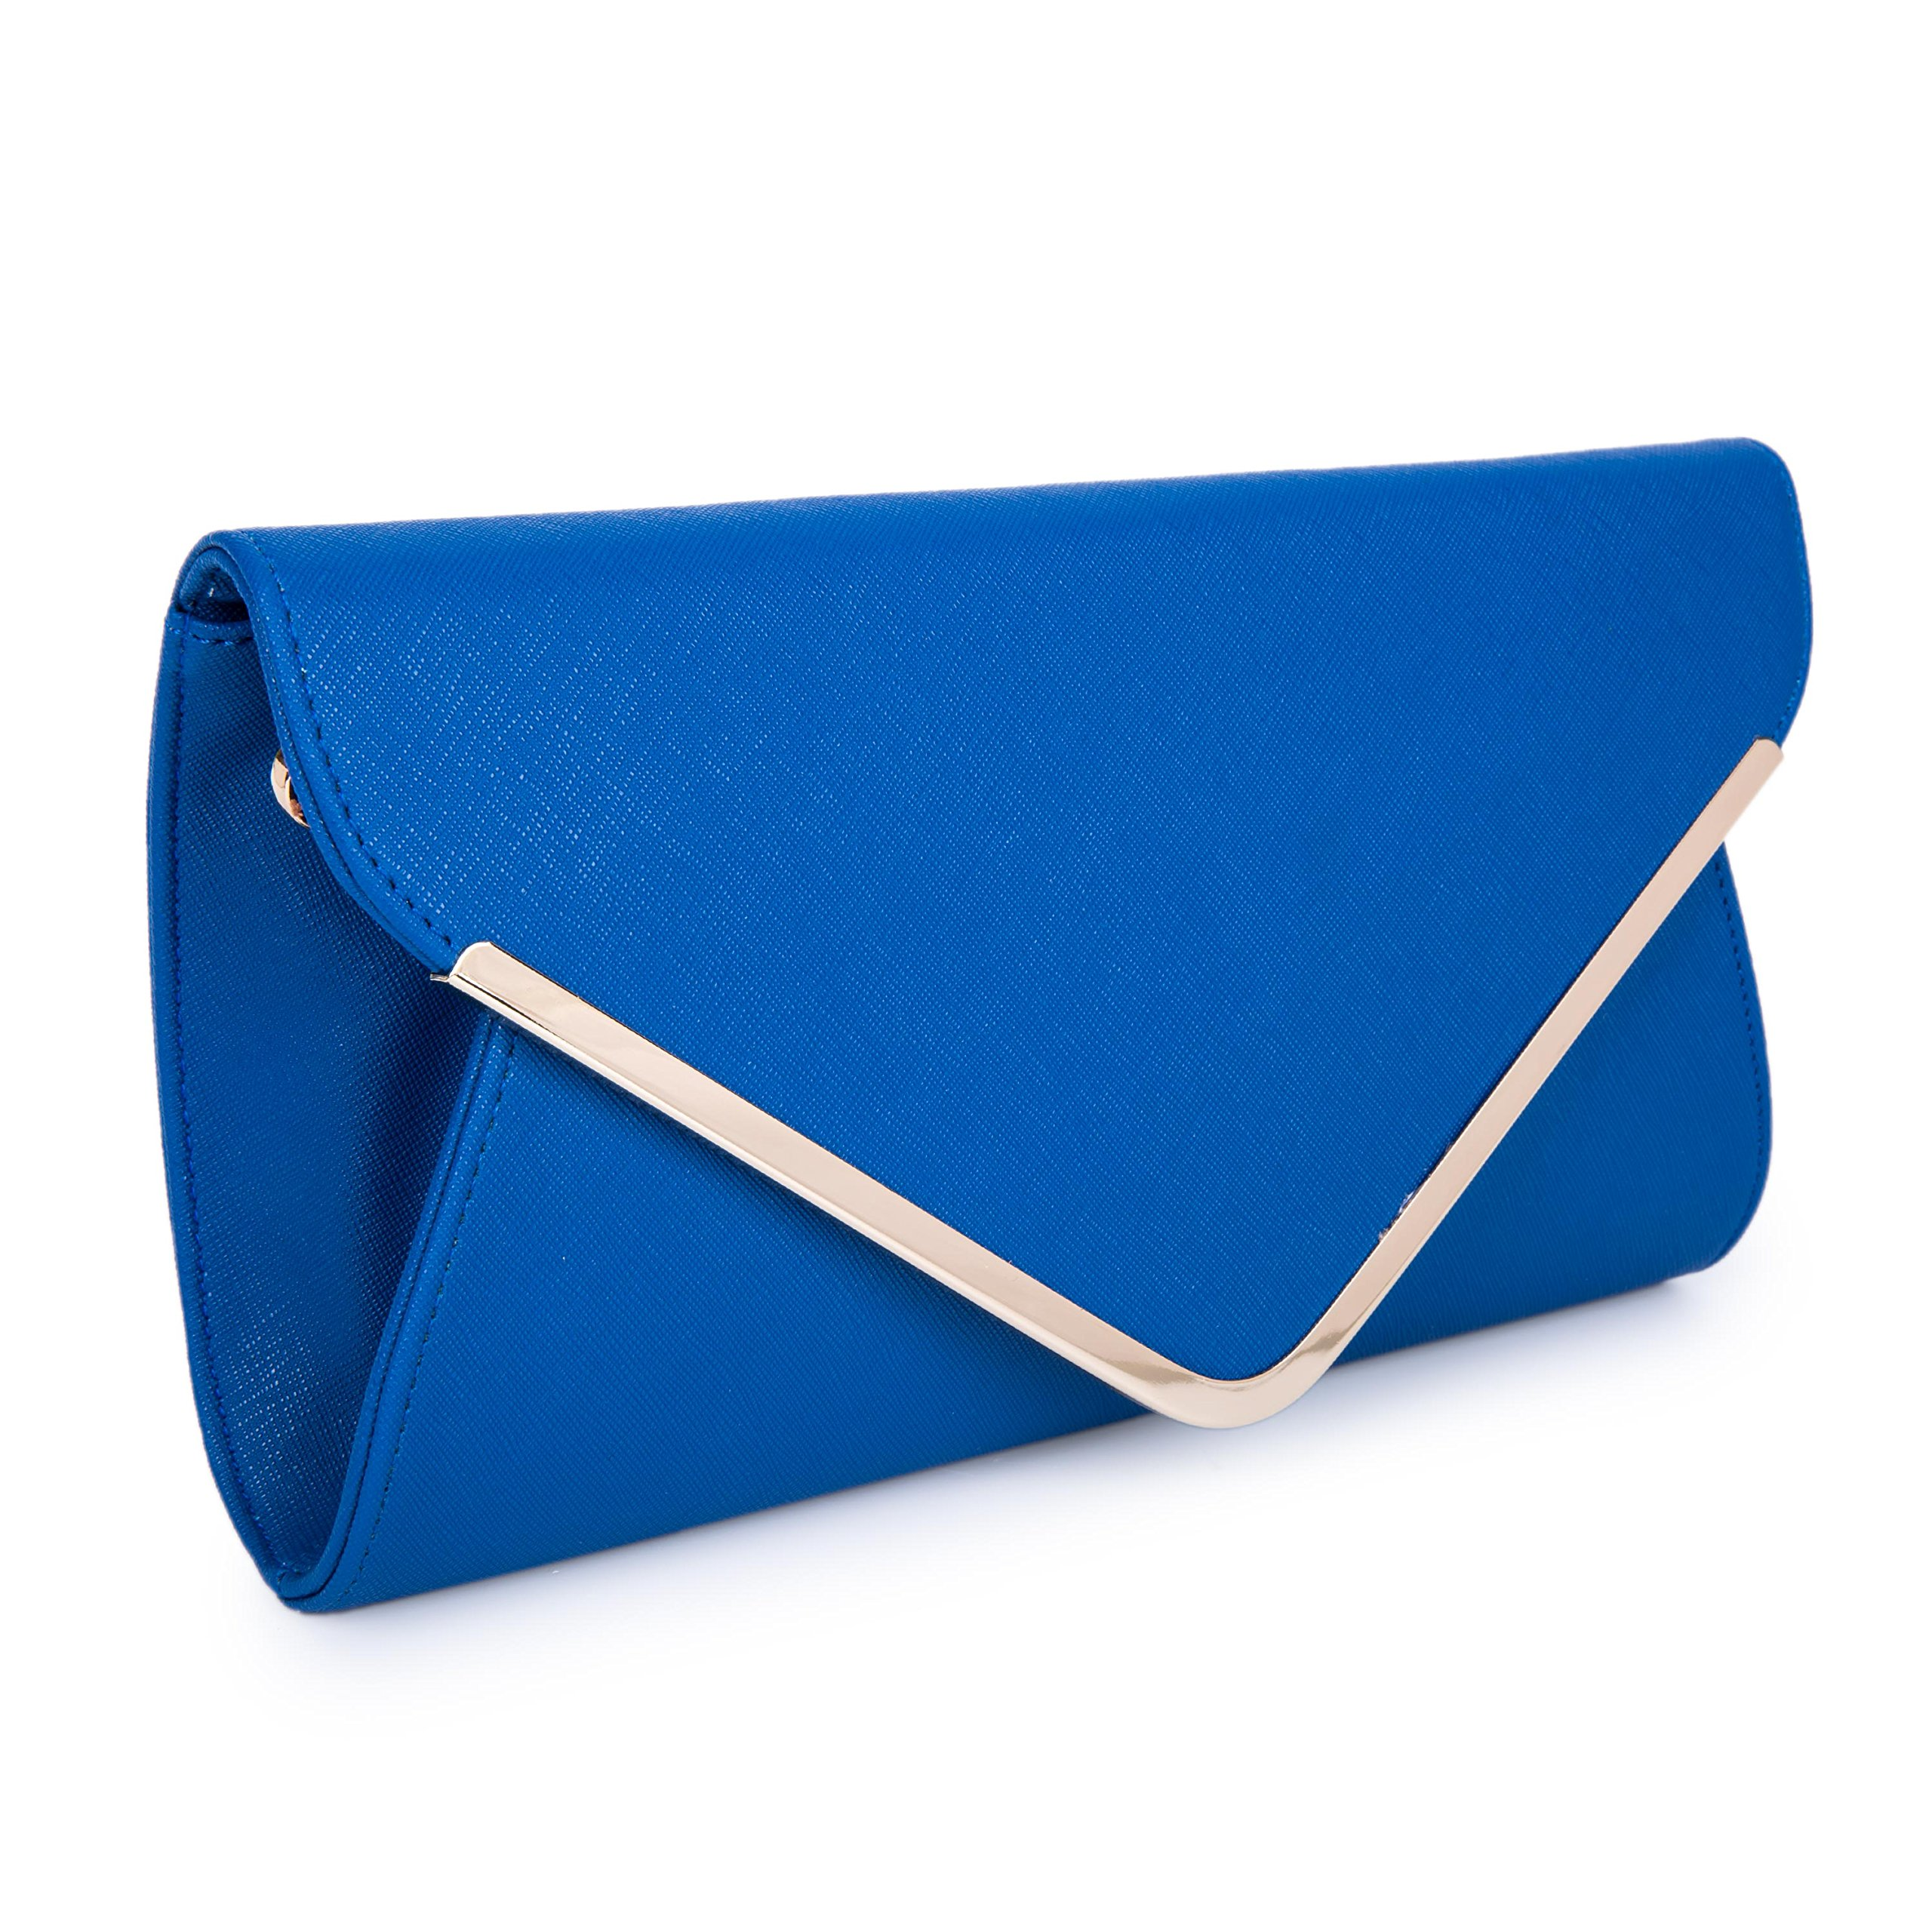 Chichitop Leather Evening Envelope Clutches Bag with Drop-in Chain Shoulder Strap for Women 2016 New Handbags Shoulder Bags,Blue